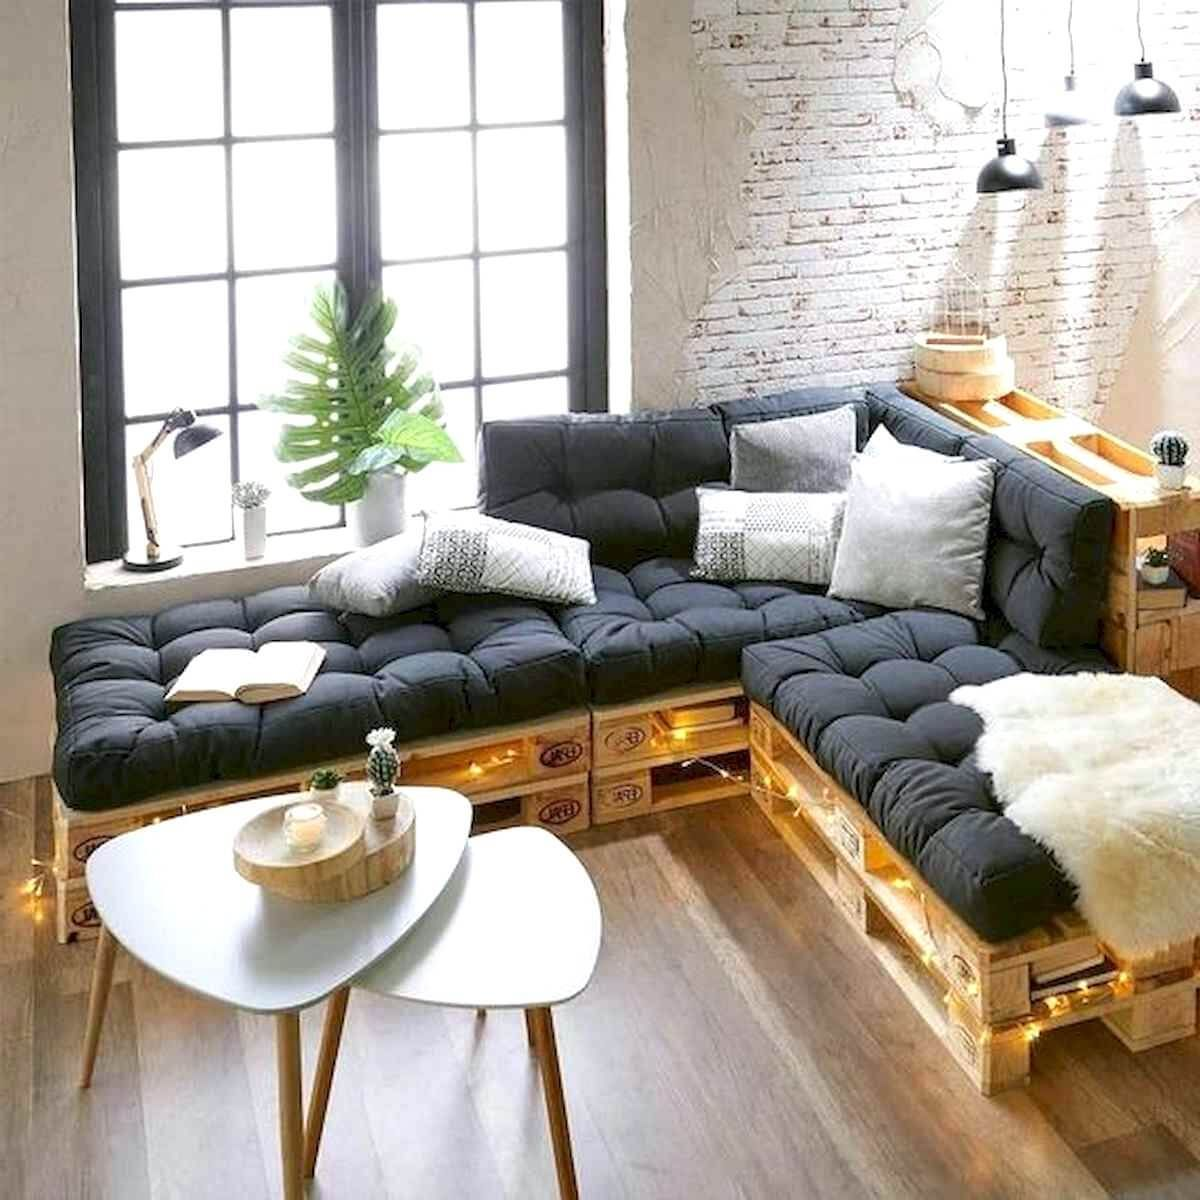 50 Inspiring Diy Projects Pallet Sofa Design Ideas Pallet Furniture Cushions Diy Furniture Couch Diy Pallet Couch